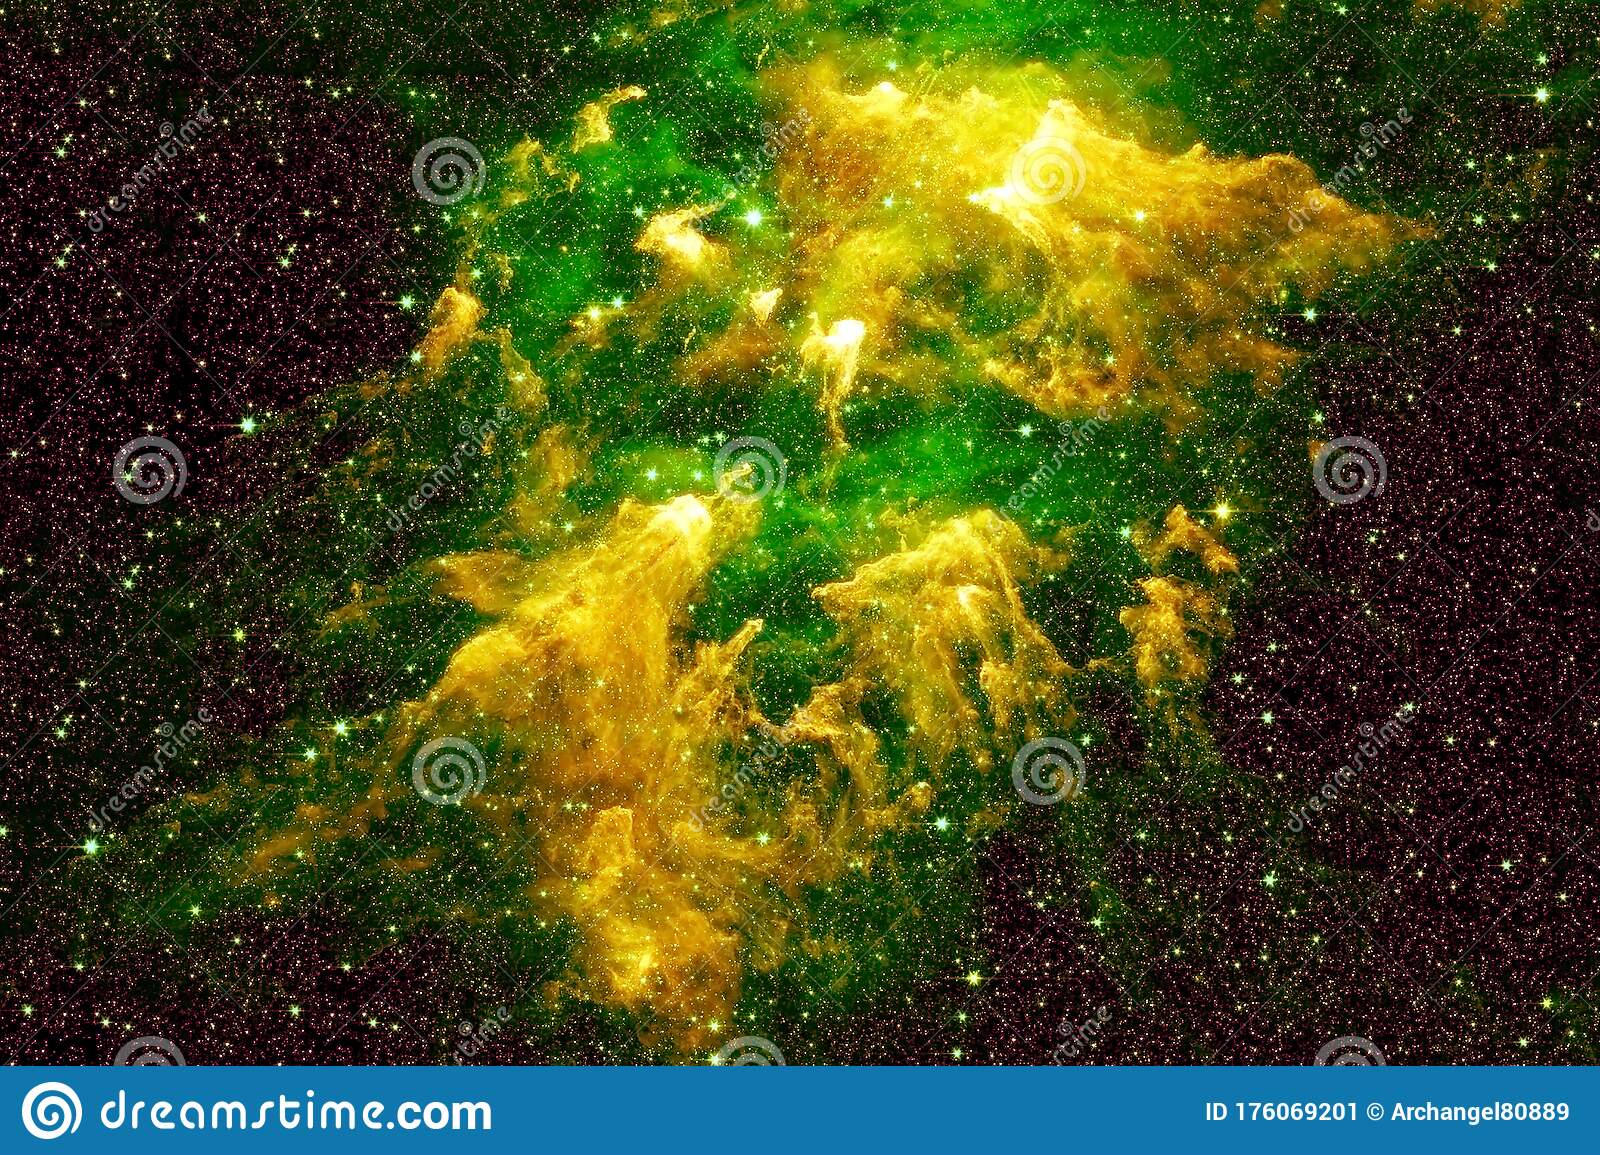 beautiful space nebula green color elements image were furnished nasa any purpose